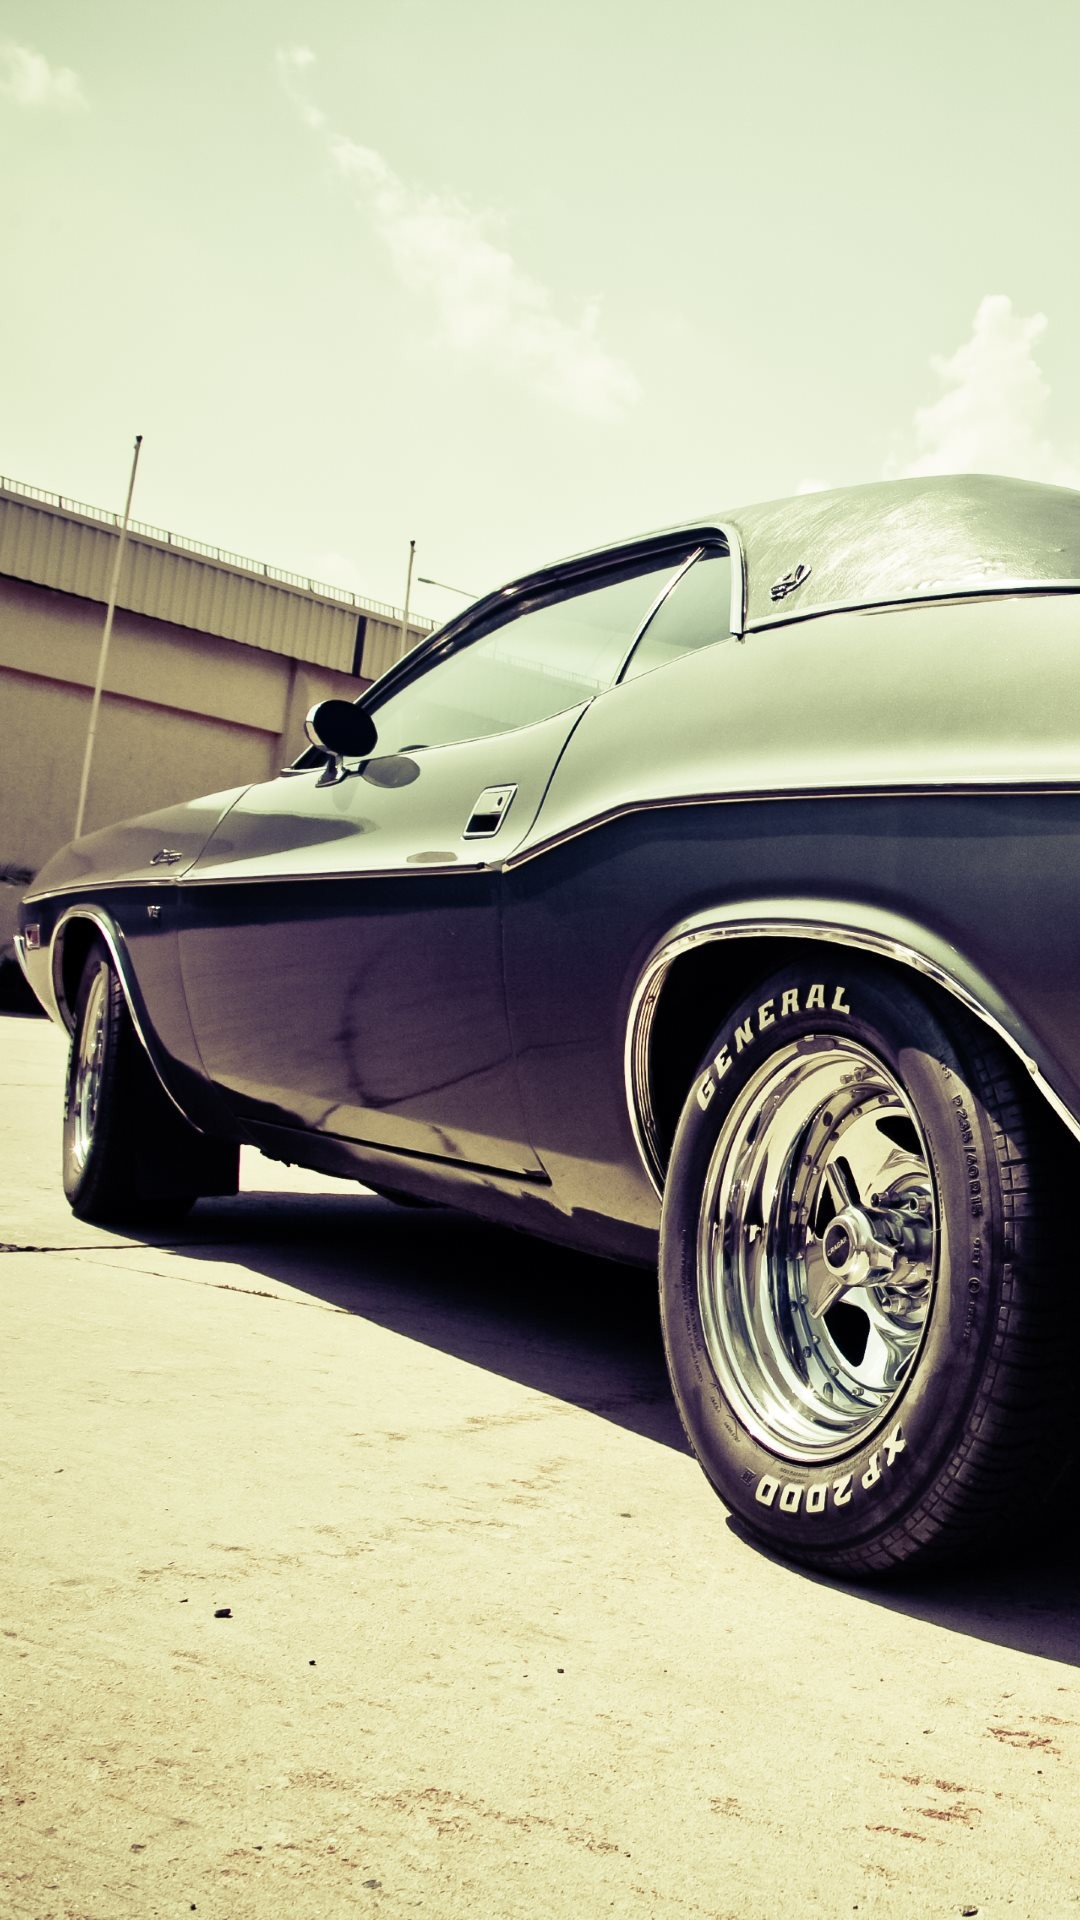 Muscle Car Iphone Wallpaper 27 With Muscle Car Iphone - American Muscle Car Wallpaper Iphone - HD Wallpaper